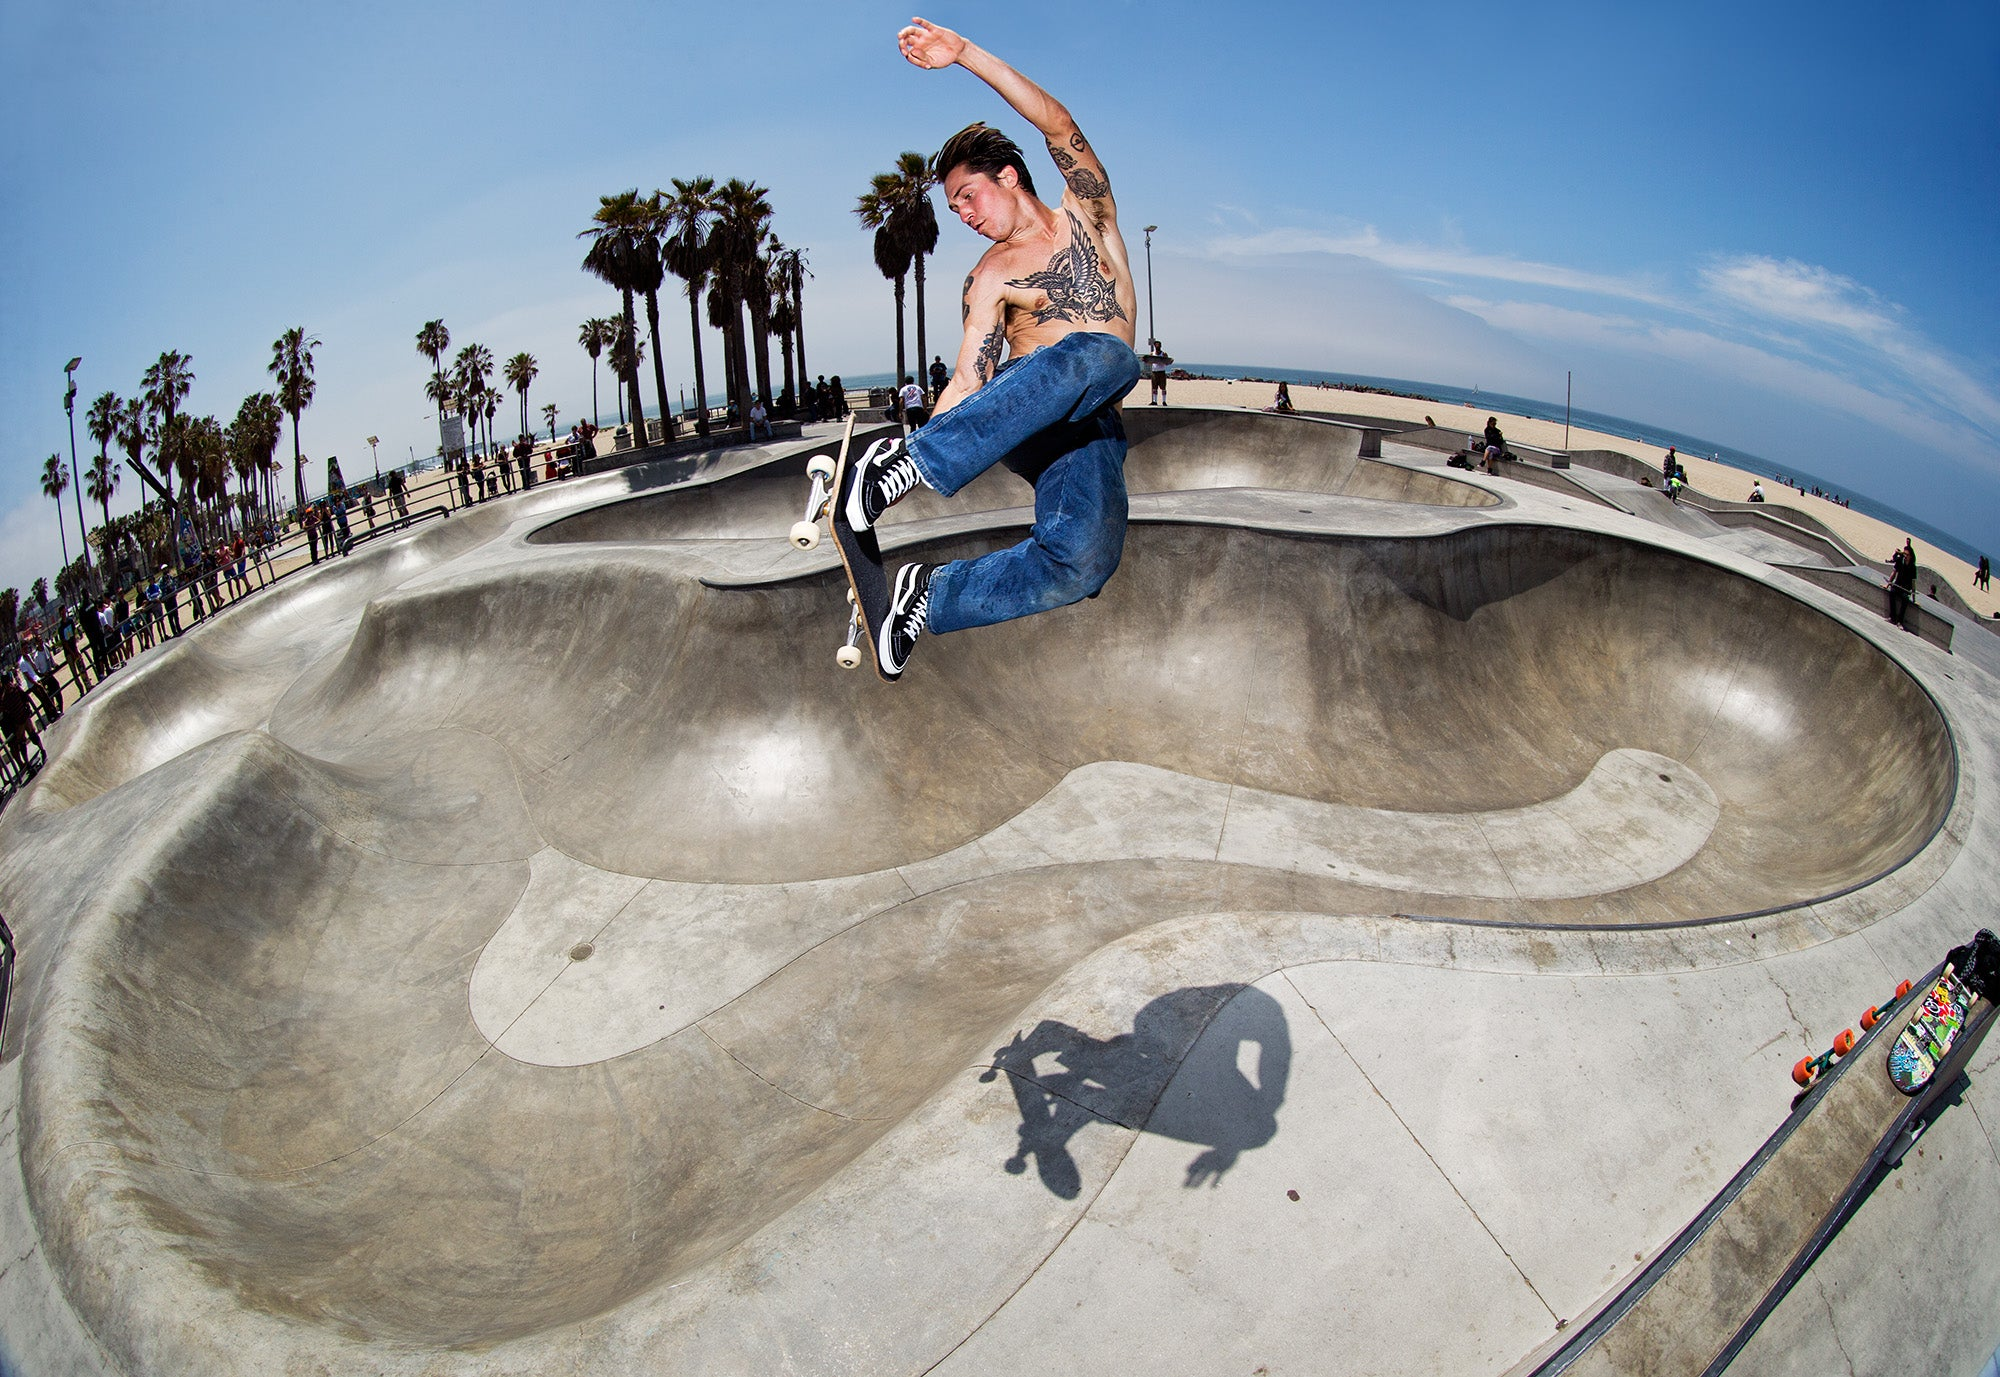 Elijah Berle Backside Air Transfer Venice photo Anthony Acosta Vans Welcome Skate Store Corey Duffel Interview